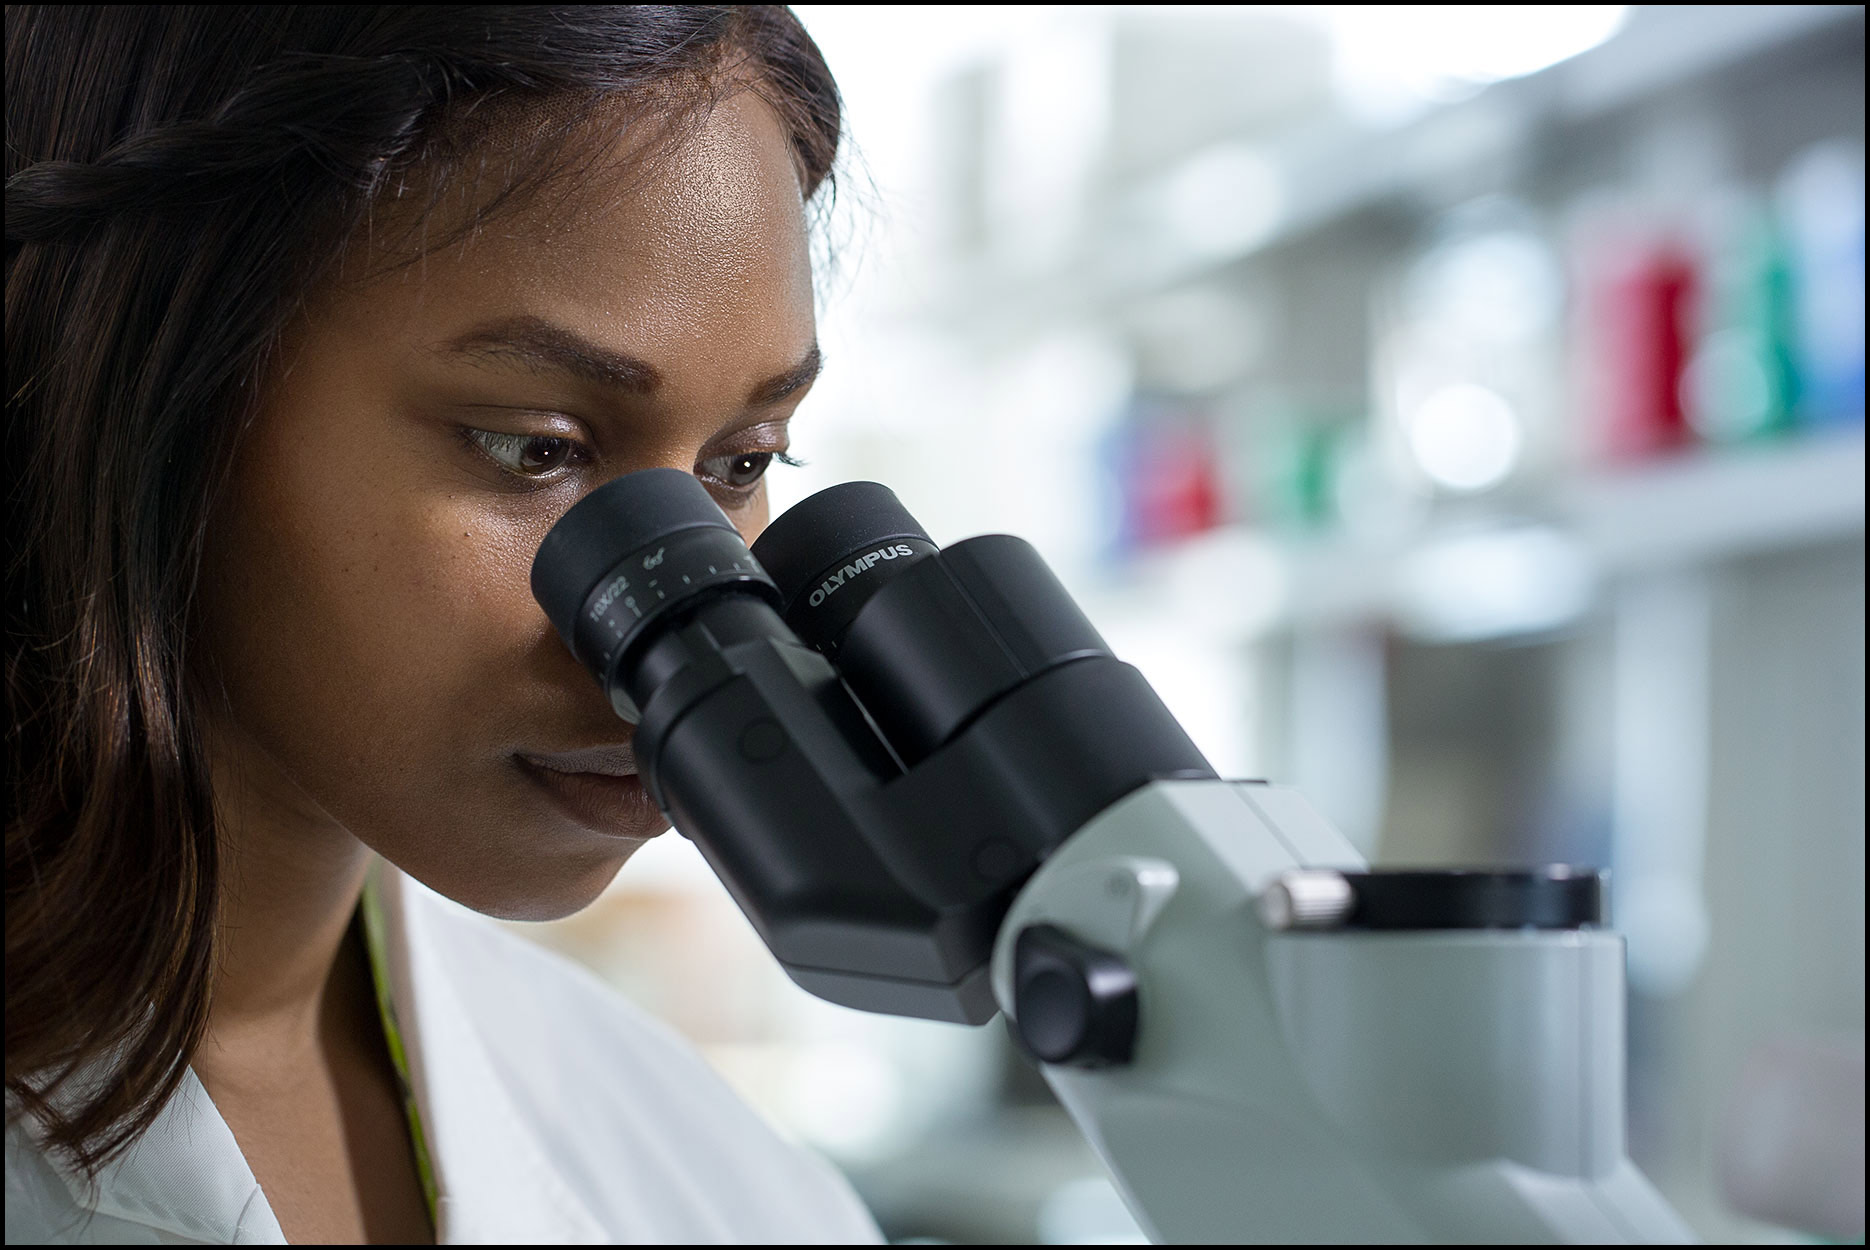 A female pharmaceutical researcher looks through a microscope inside a bright laboratory.